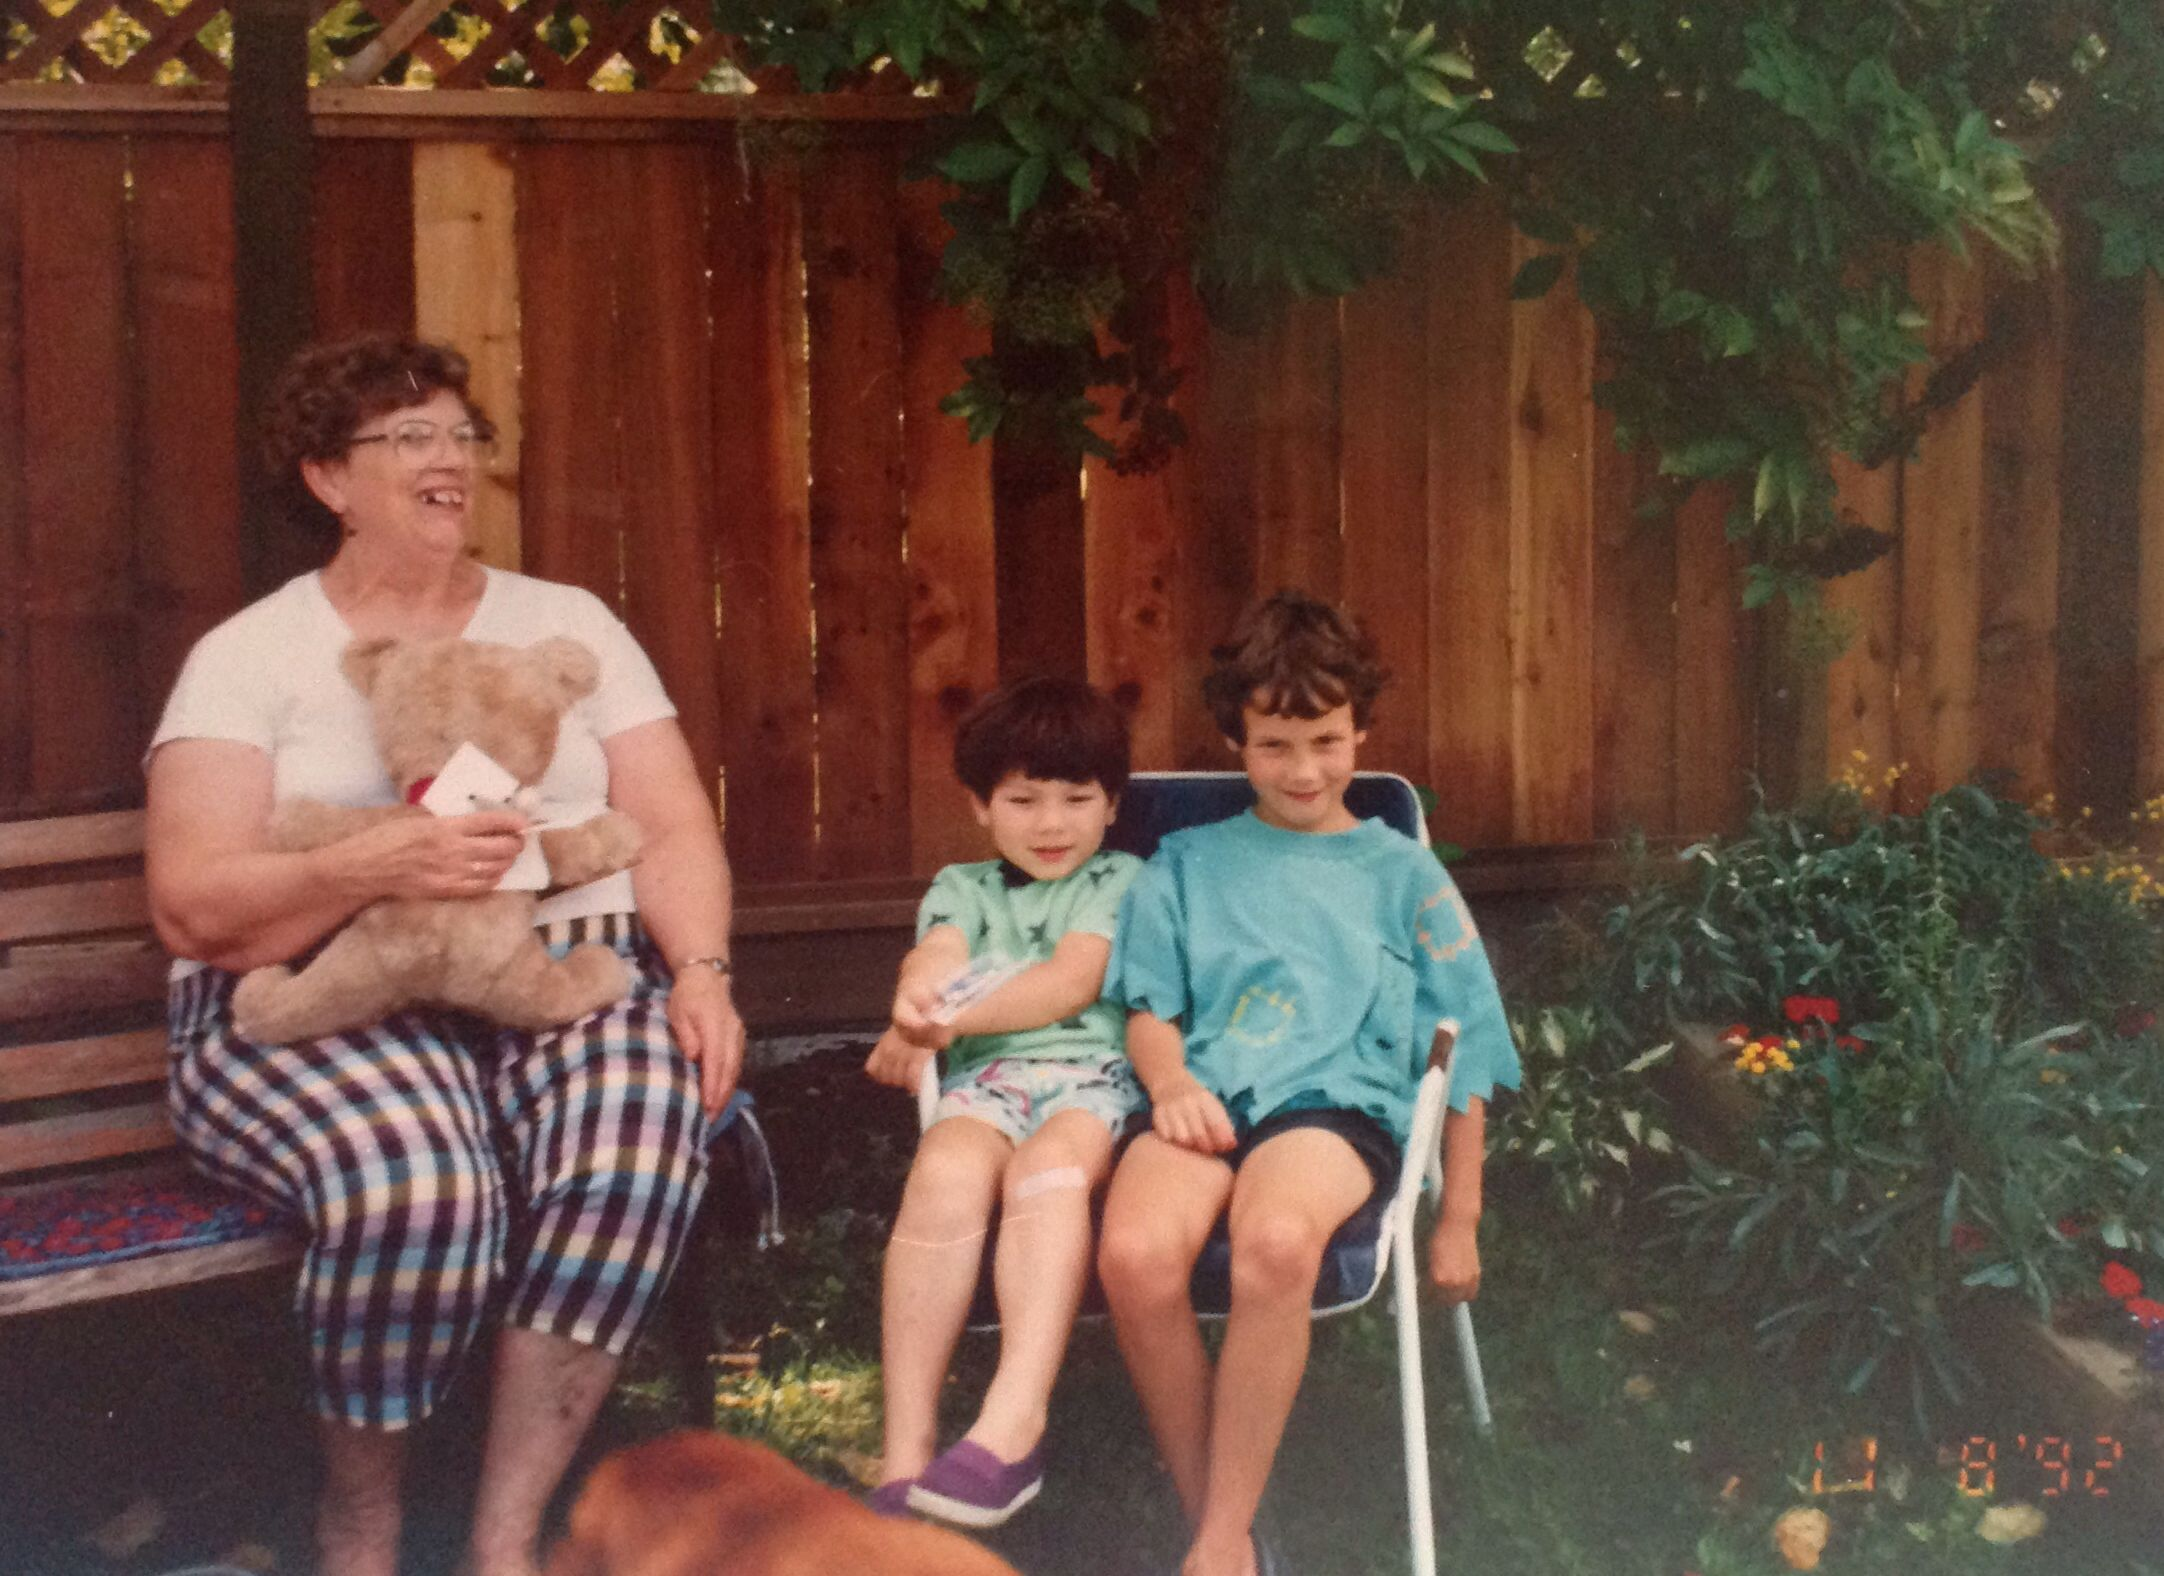 Mum, Joan Anderson, with grandsons, Harry Anderson Seto and Roman Lanzarotta. 9207 Applecross Cr., Surrey. Summer 1992.